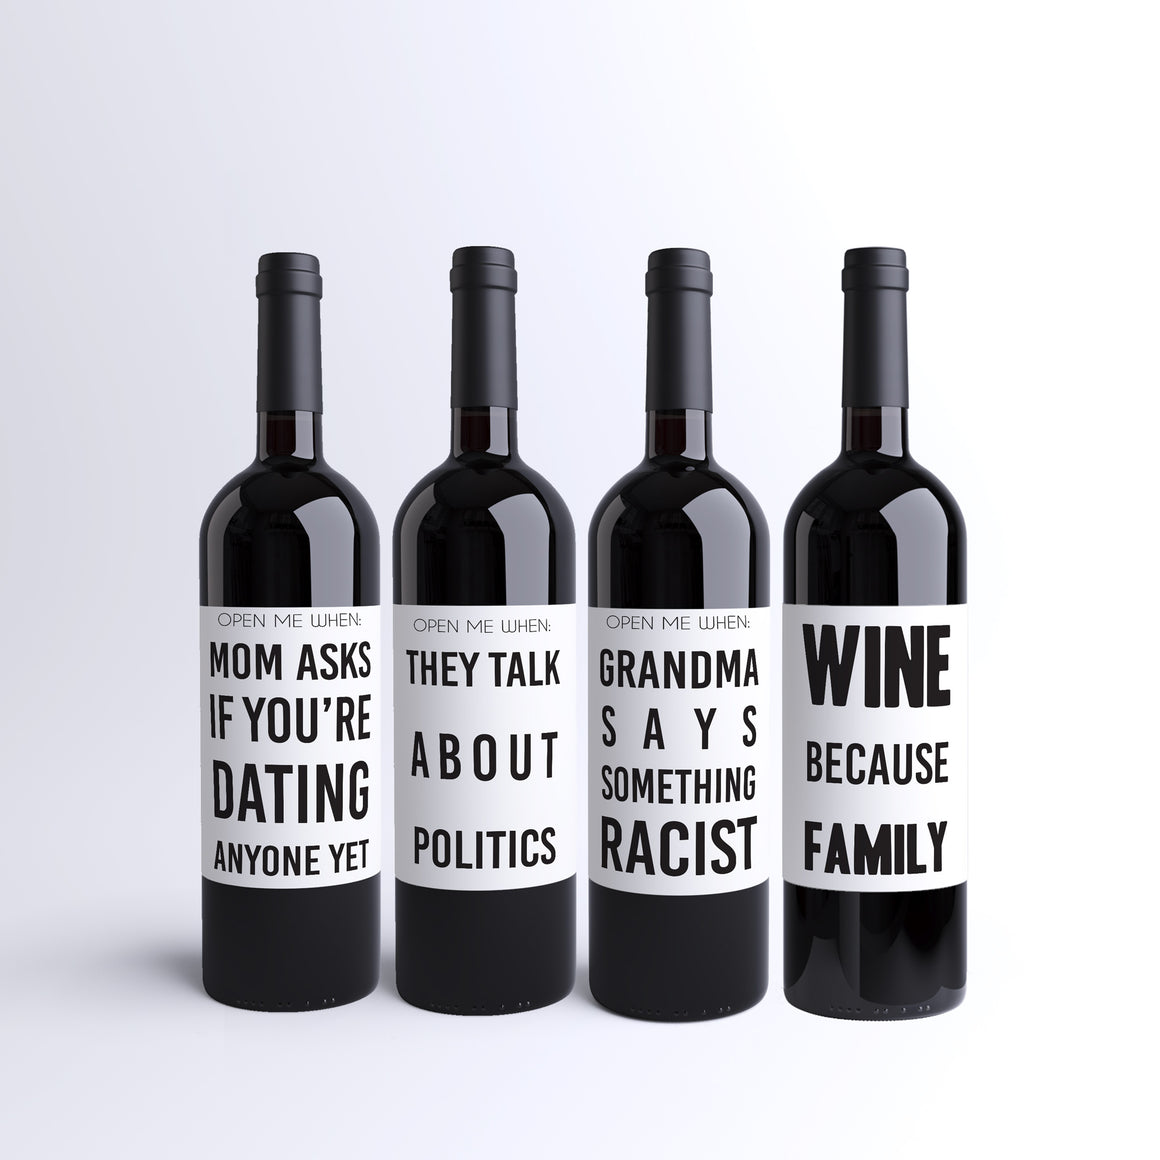 Funny wine labels to survive family dinner at holidays